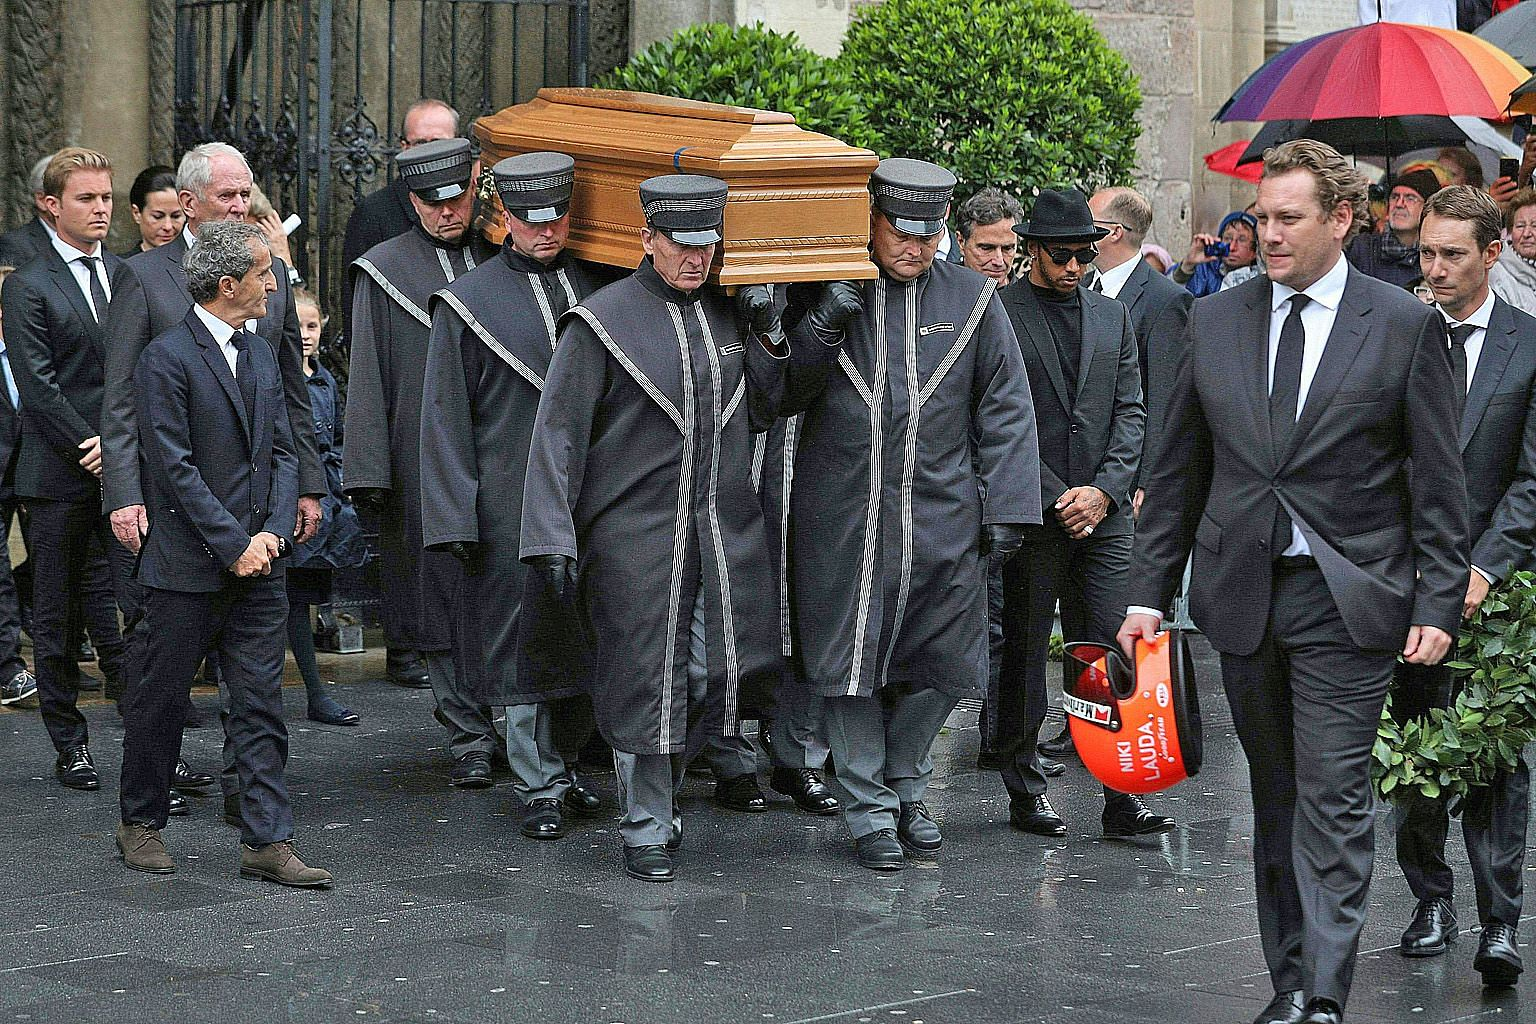 (From left) 2016 Formula One champion Nico Rosberg, four-time winner Alain Prost, Mercedes' defending champion Lewis Hamilton and Niki Lauda's sons Lukas and Mathias escorting the coffin of the late three-time world champion as it is being carried ou